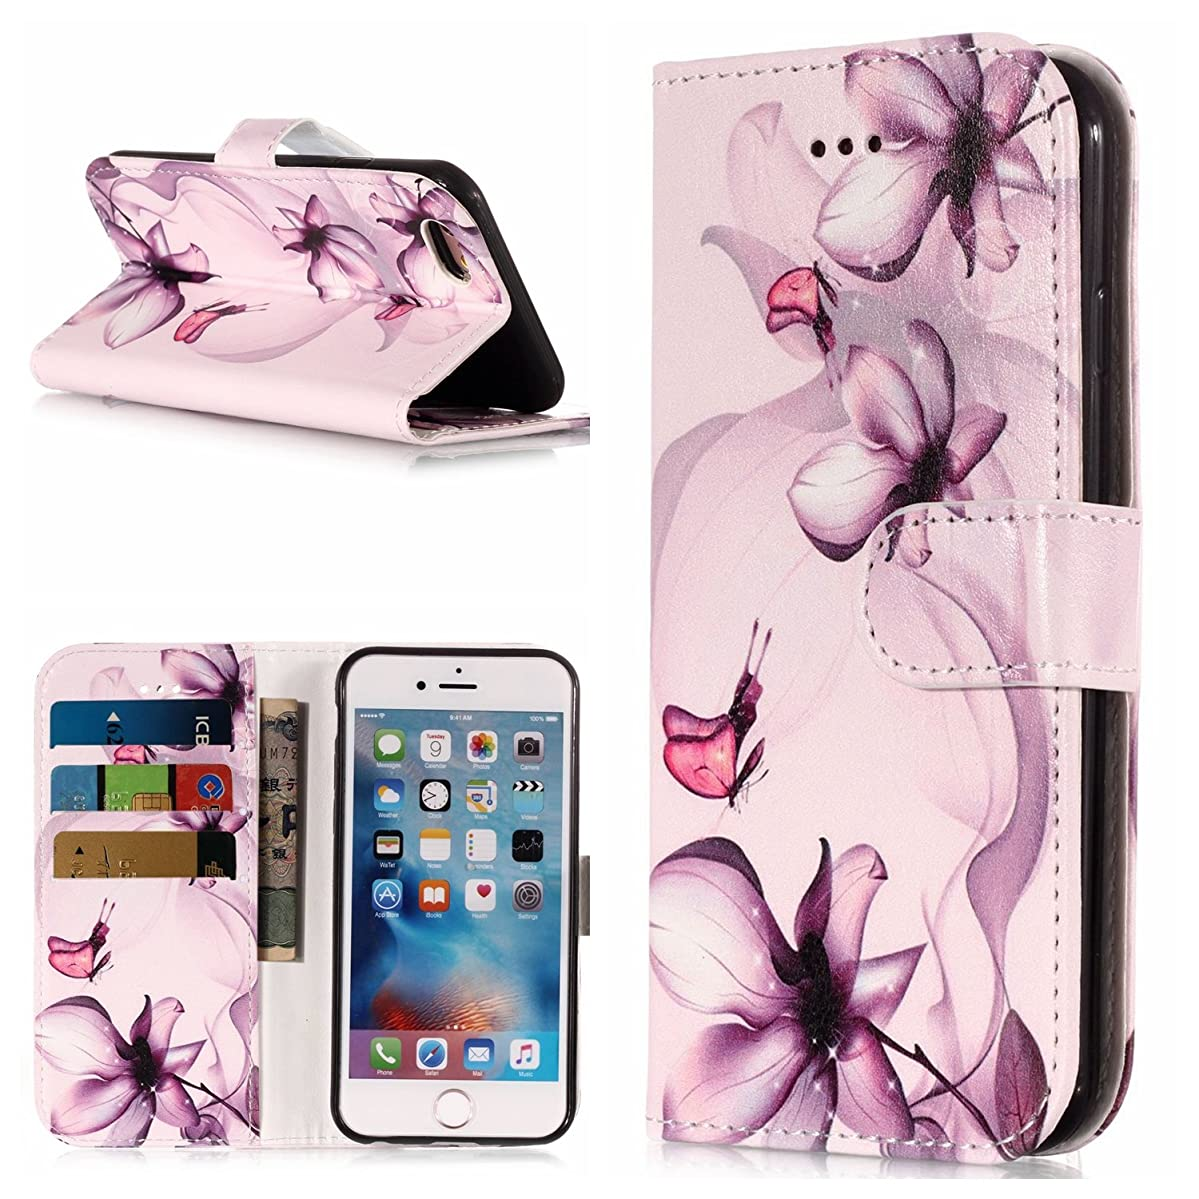 DAMONDY iPhone 6s Plus,iPhone 6 Plus, Shiny Marble Cute Pattern Wallet Purse Credit Card ID Holders Design Flip Leather Cover TPU Soft Bumper Kickstand Magnetic for iPhone 6/6s Plus-dream flower